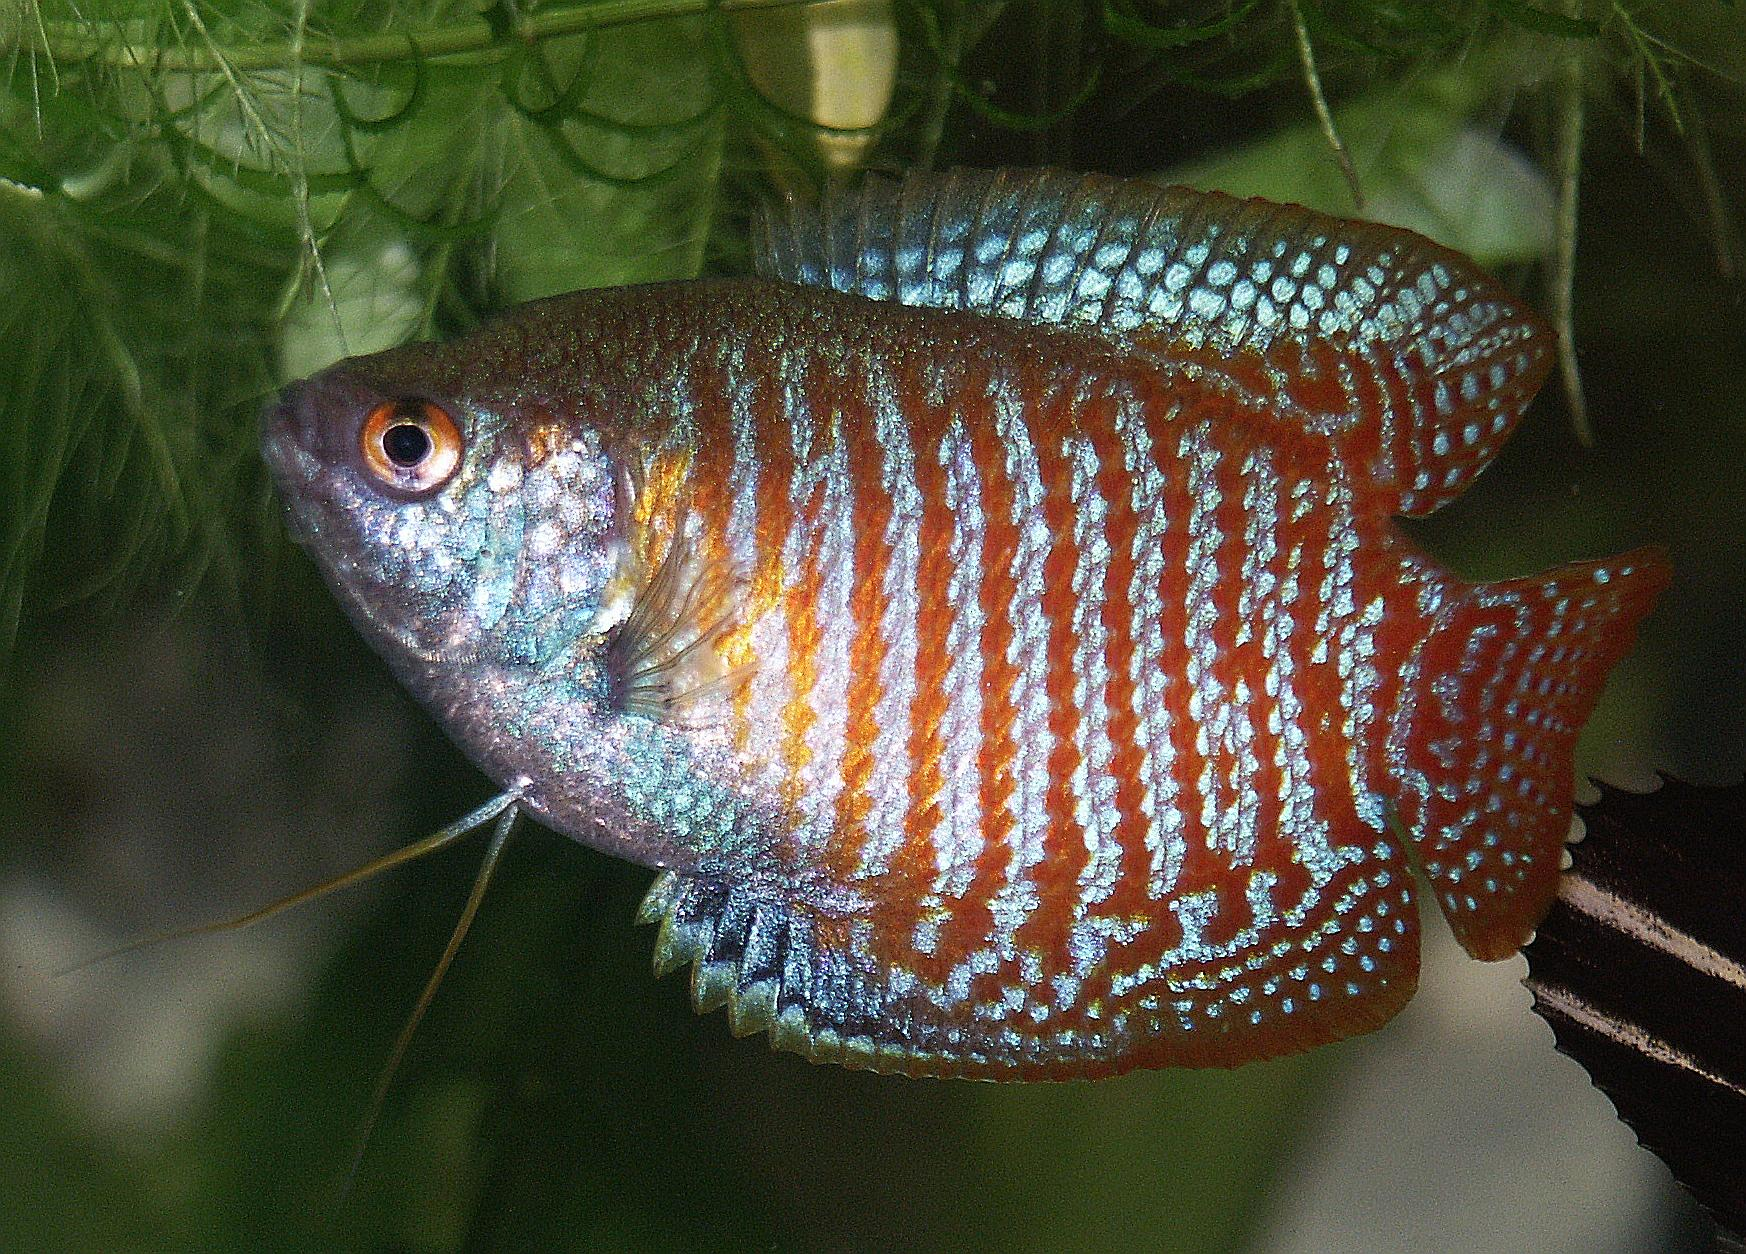 Dwarf gourami on thу glass wallpaper